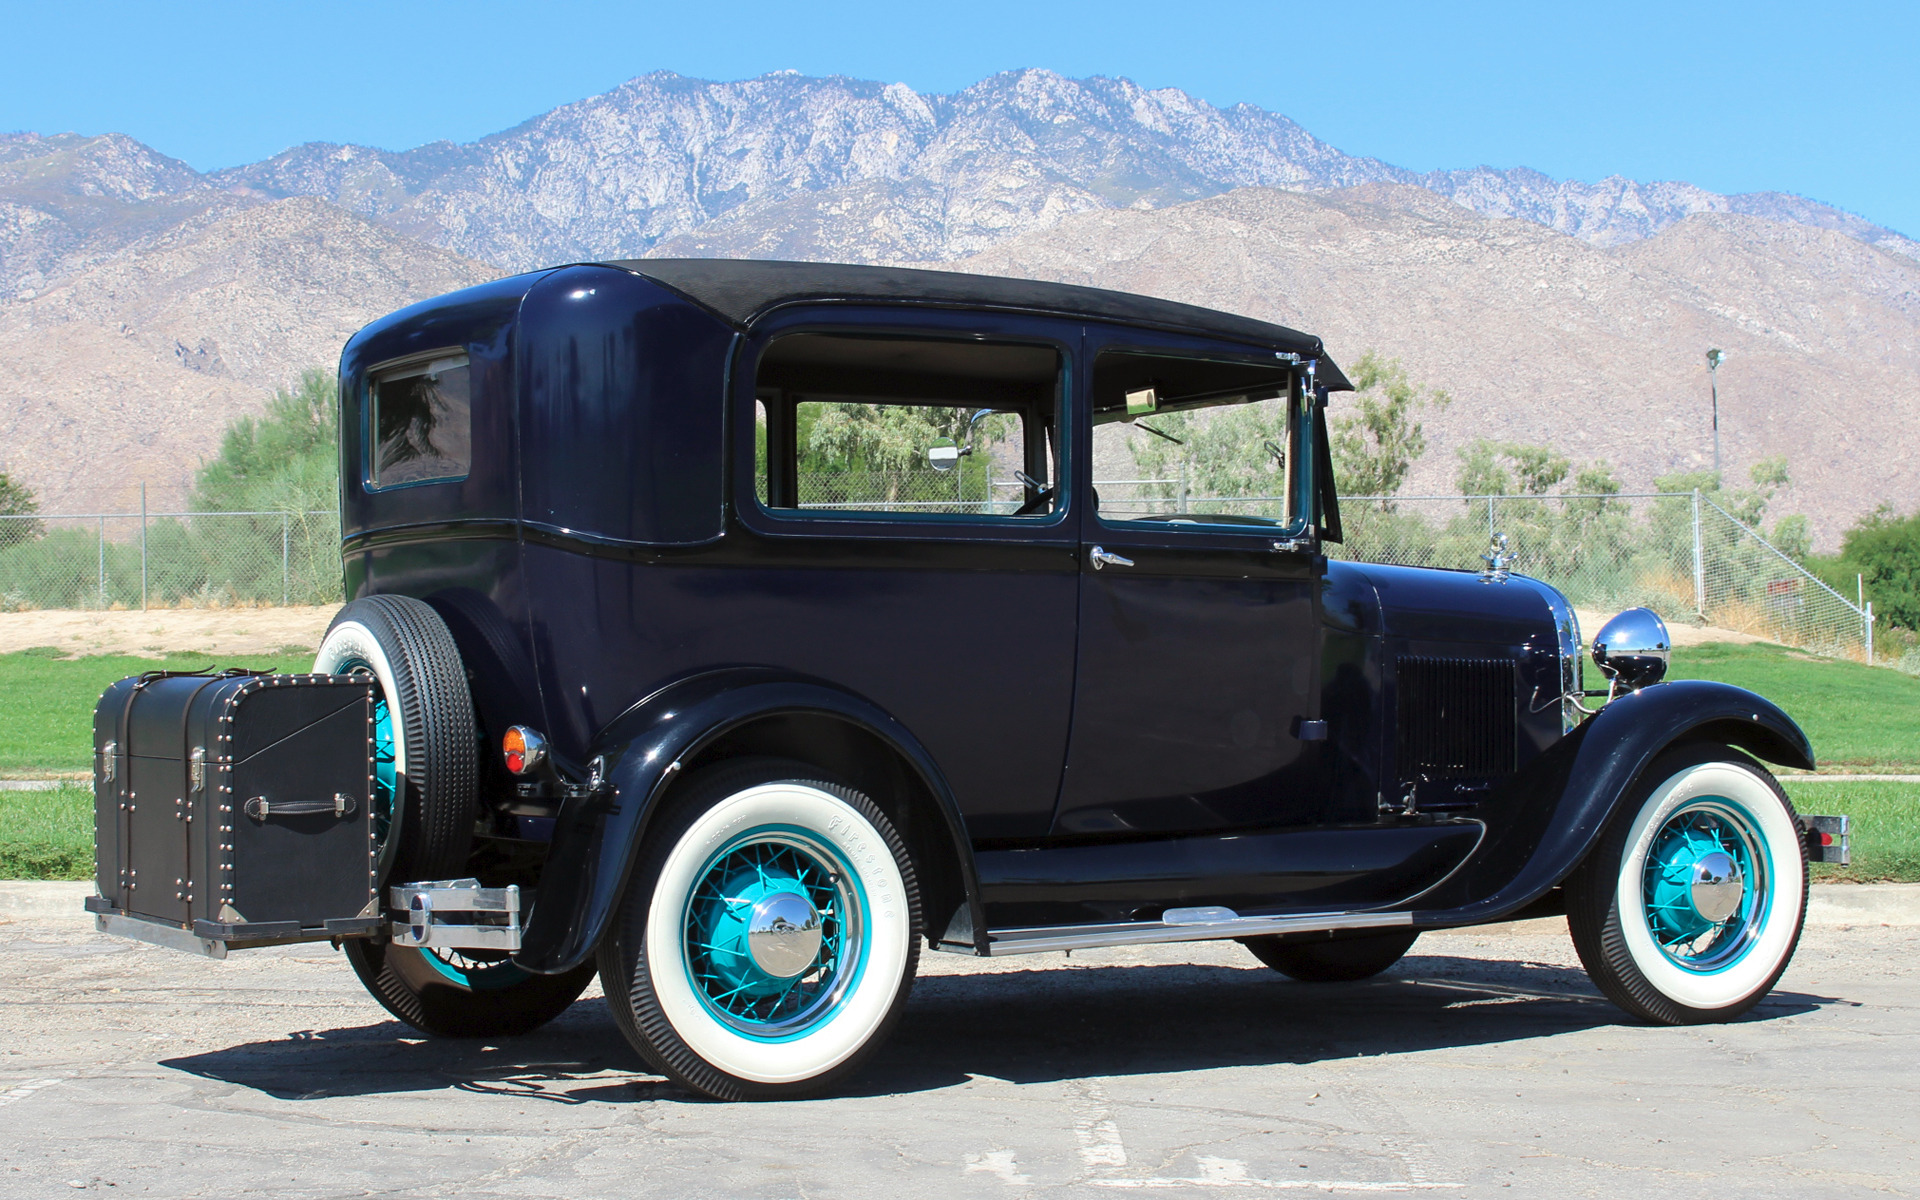 My Ford Benefits >> 1929 Ford Model A Tudor Stock # F340 for sale near Palm Springs, CA | CA Ford Dealer